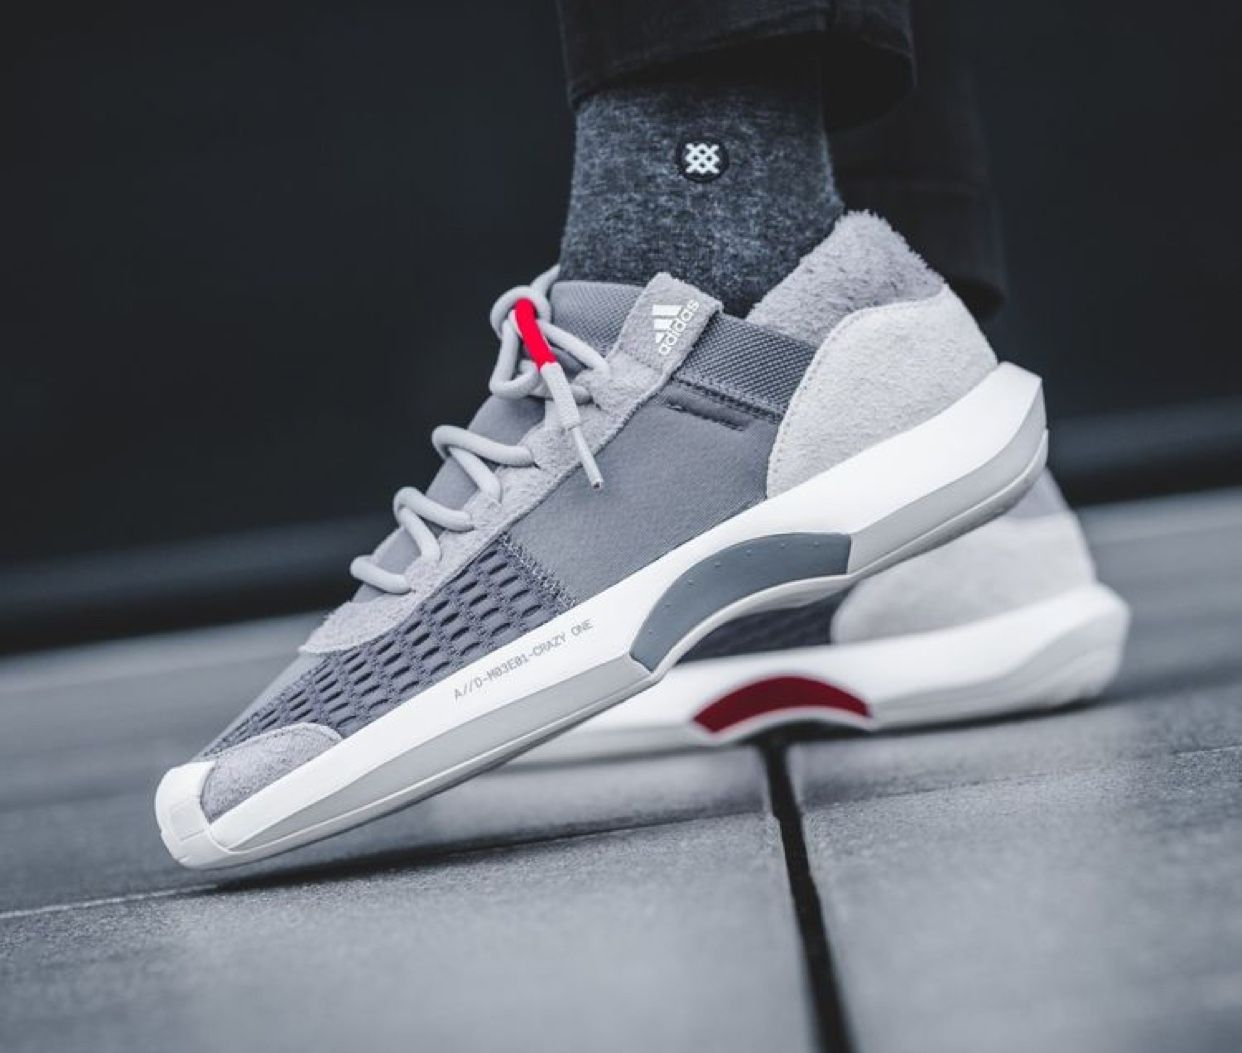 reputable site 8a484 43bc4 Adidas crazy 1 adv low